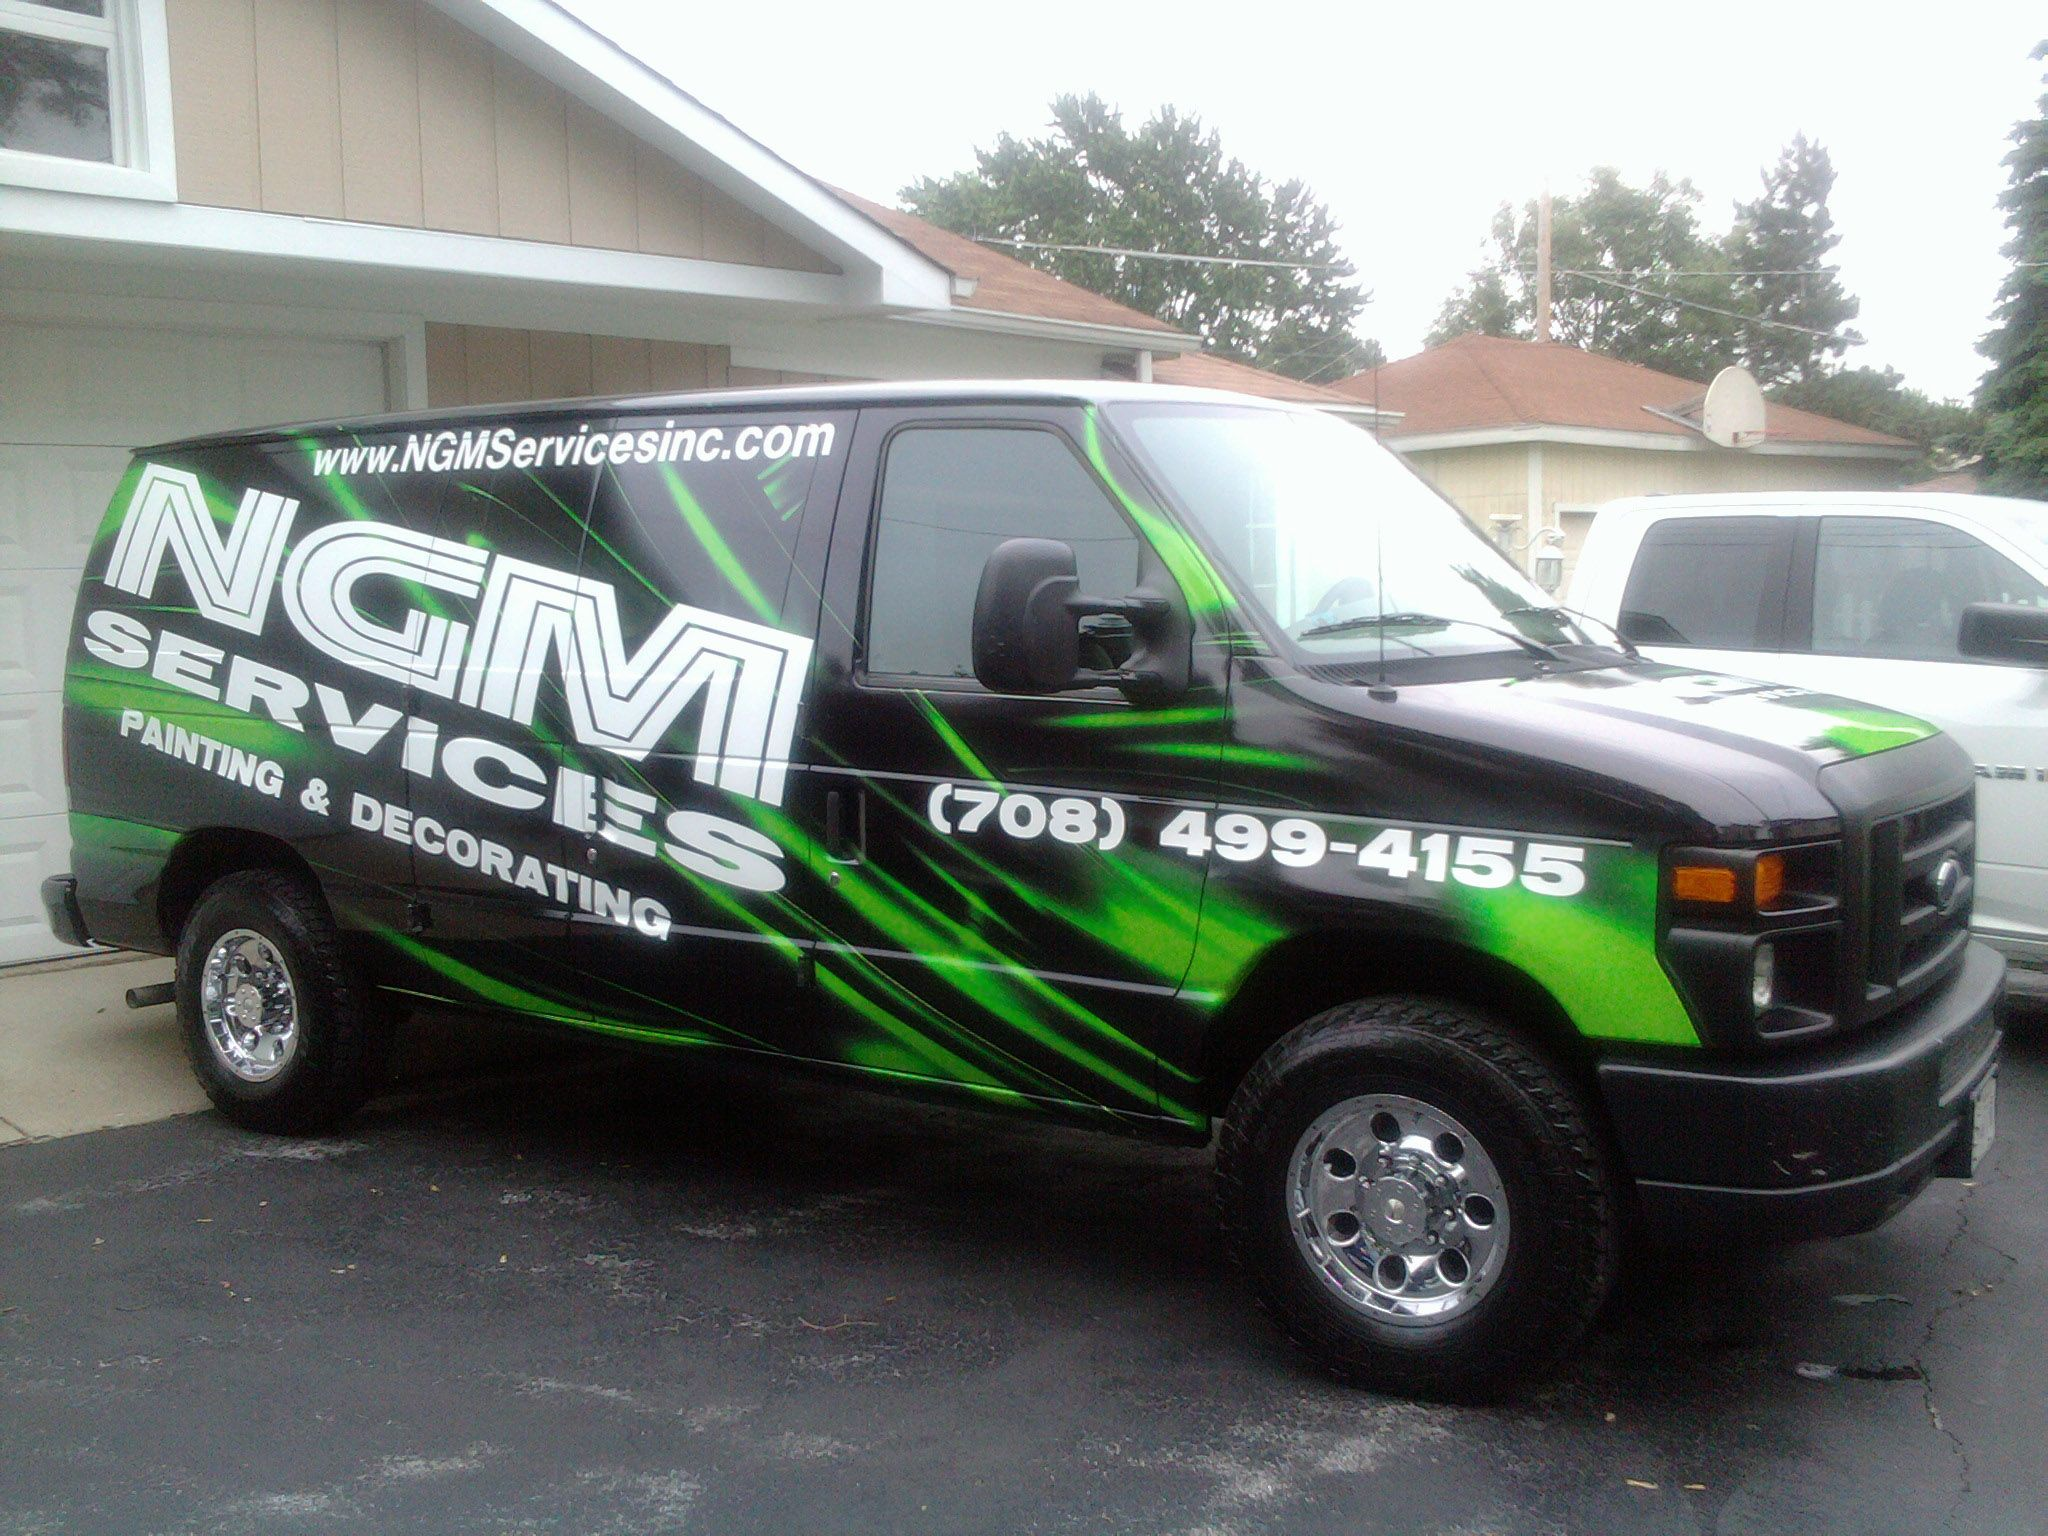 Full Vehicle Vinyl Wrap Done For Ngm Cleaning Services By M O Graphics In New Lenox Il Vinyl Wrap New Lenox Decorative Painting